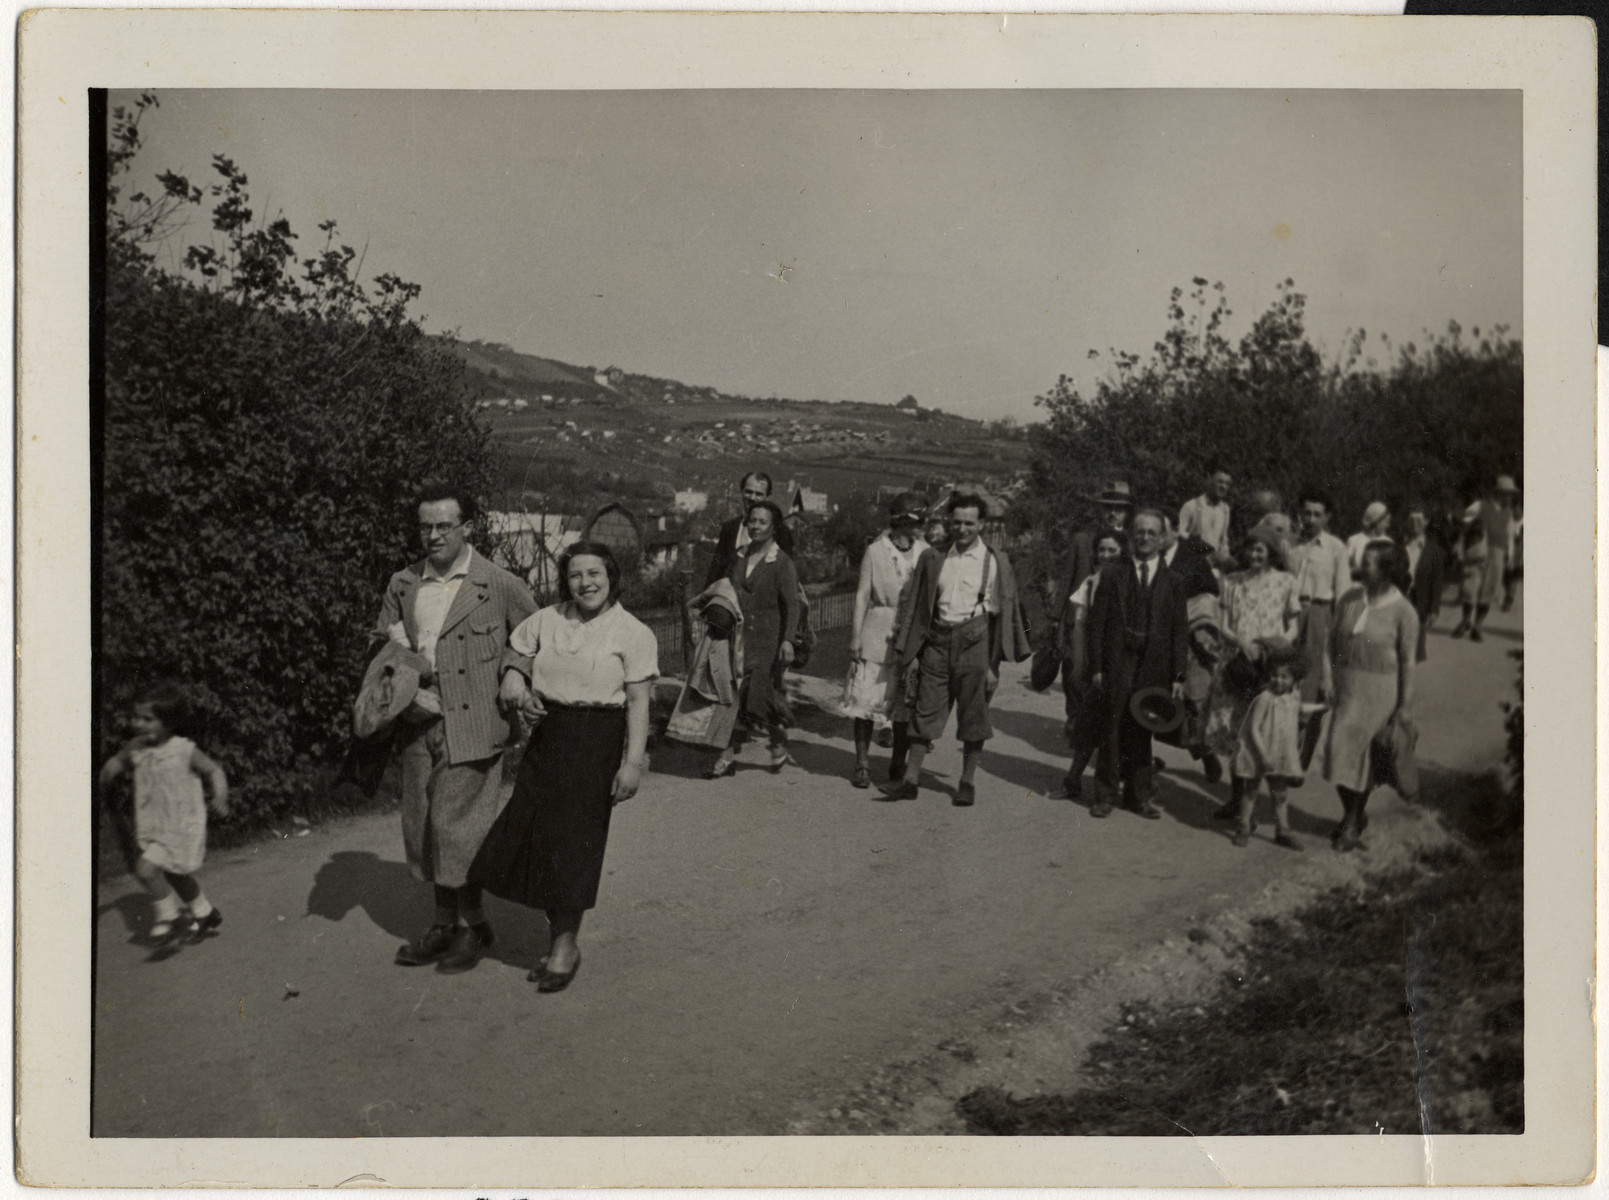 A group of friends on an outing in the country.    Among those pictured are Leo Weiss (front, on left), Mrs. Antler (center back, carrying coat over her arm), Richard Wiener (center, wearing white shirt), Hilda Wiener (far right), and her daughter Nelly (holding her hand).